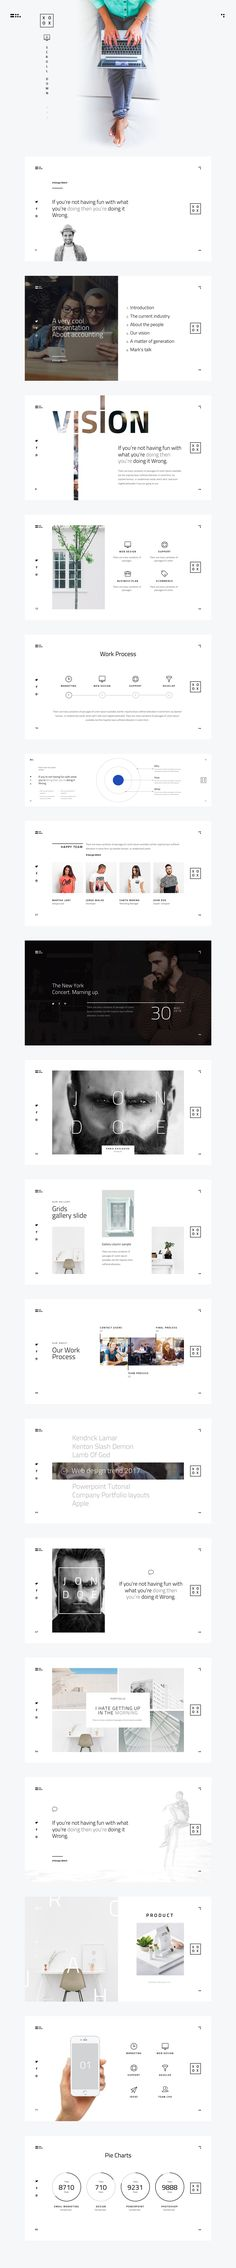 XOXO-Minimal Powerpoint Template by dublin_design on @creativemarket